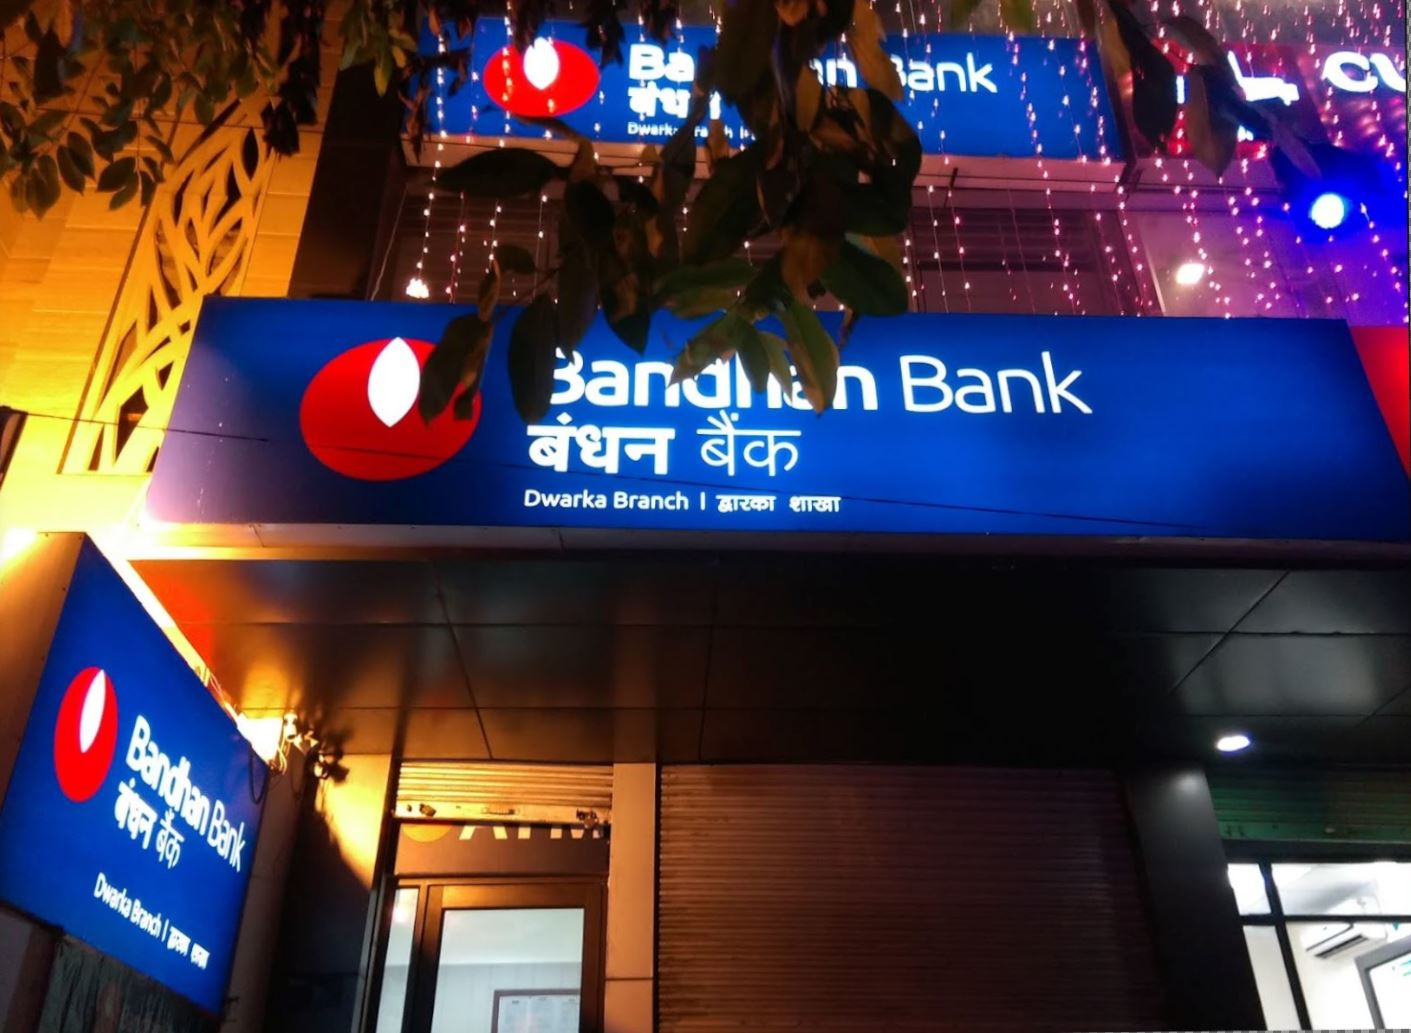 RBI lifts restriction on branch expansion of Bandhan Bank